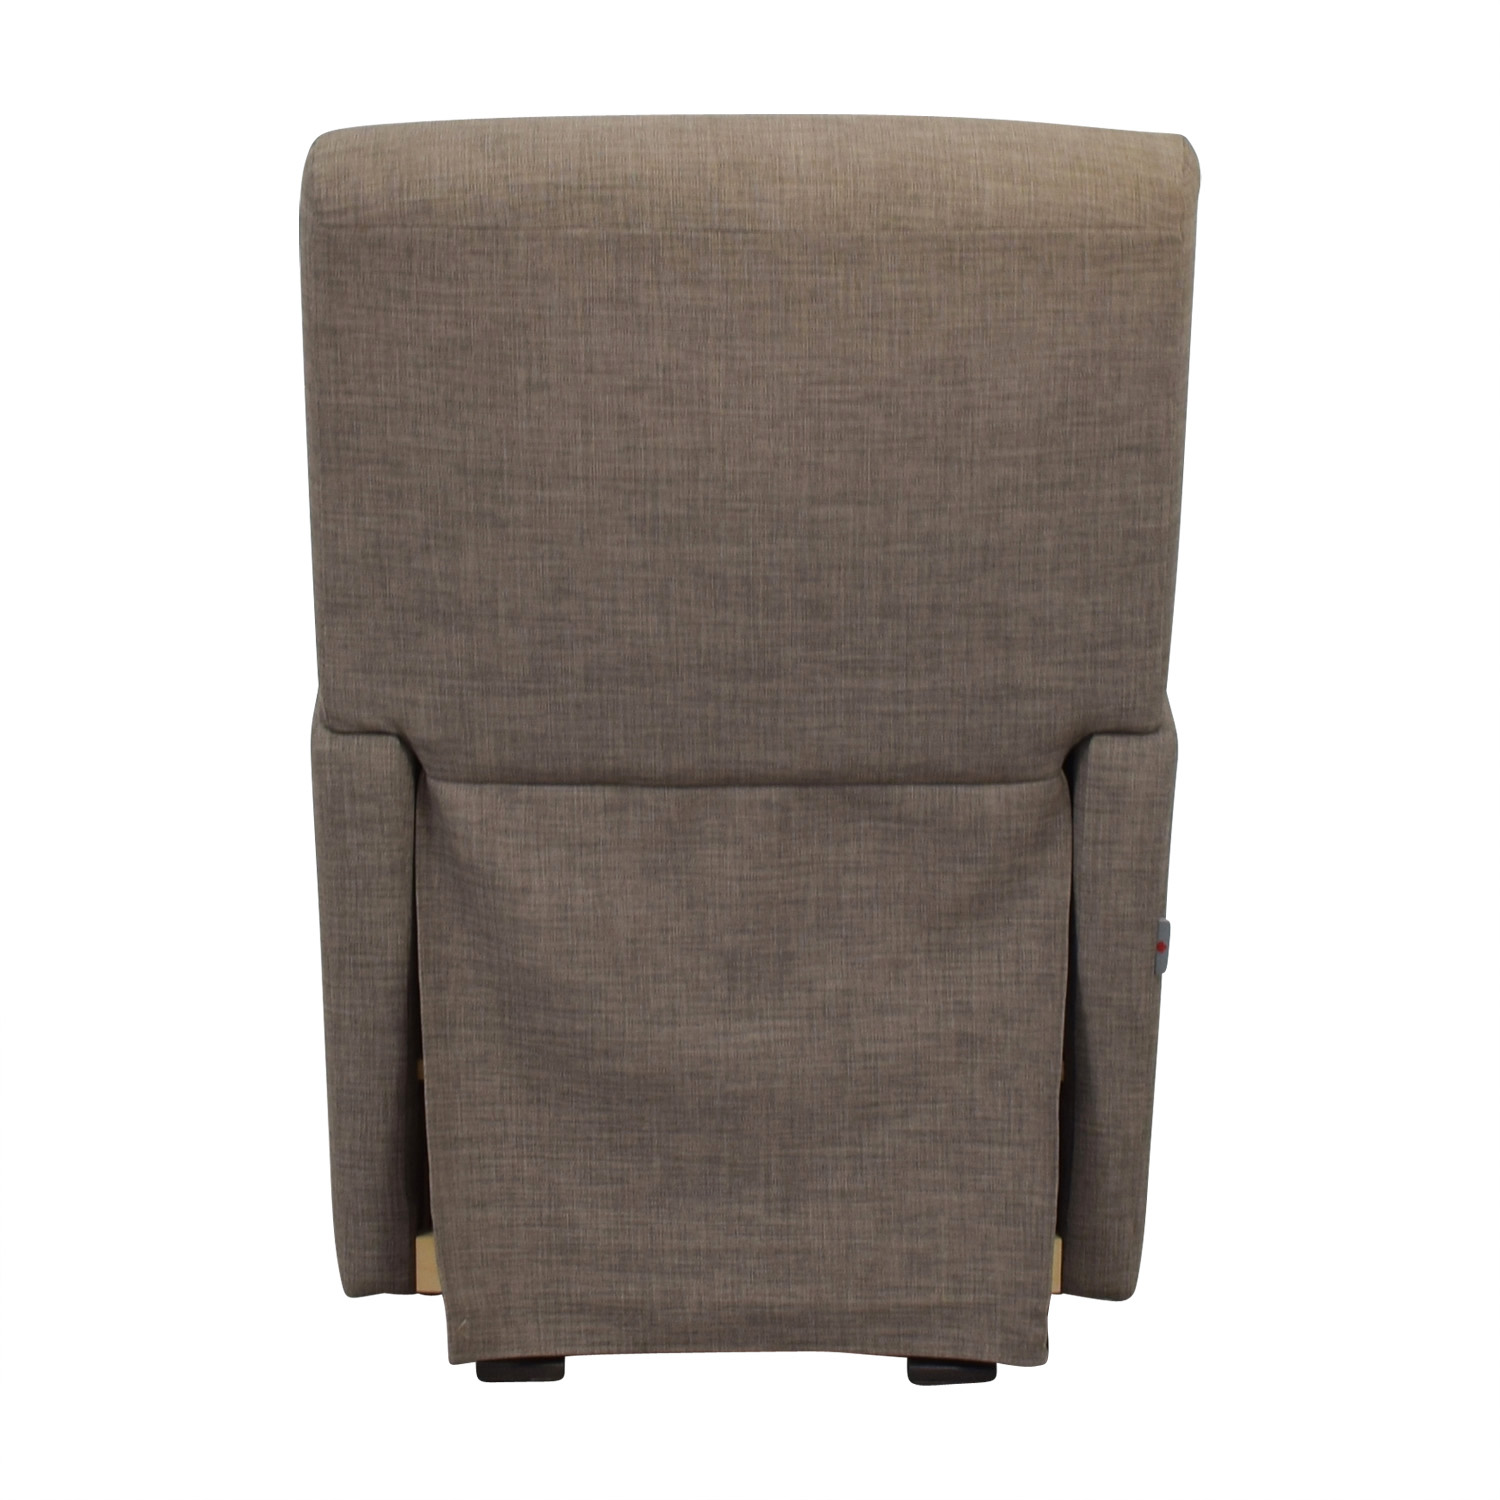 Dutailier Dutailier Grey Glider Reclining Chair second hand